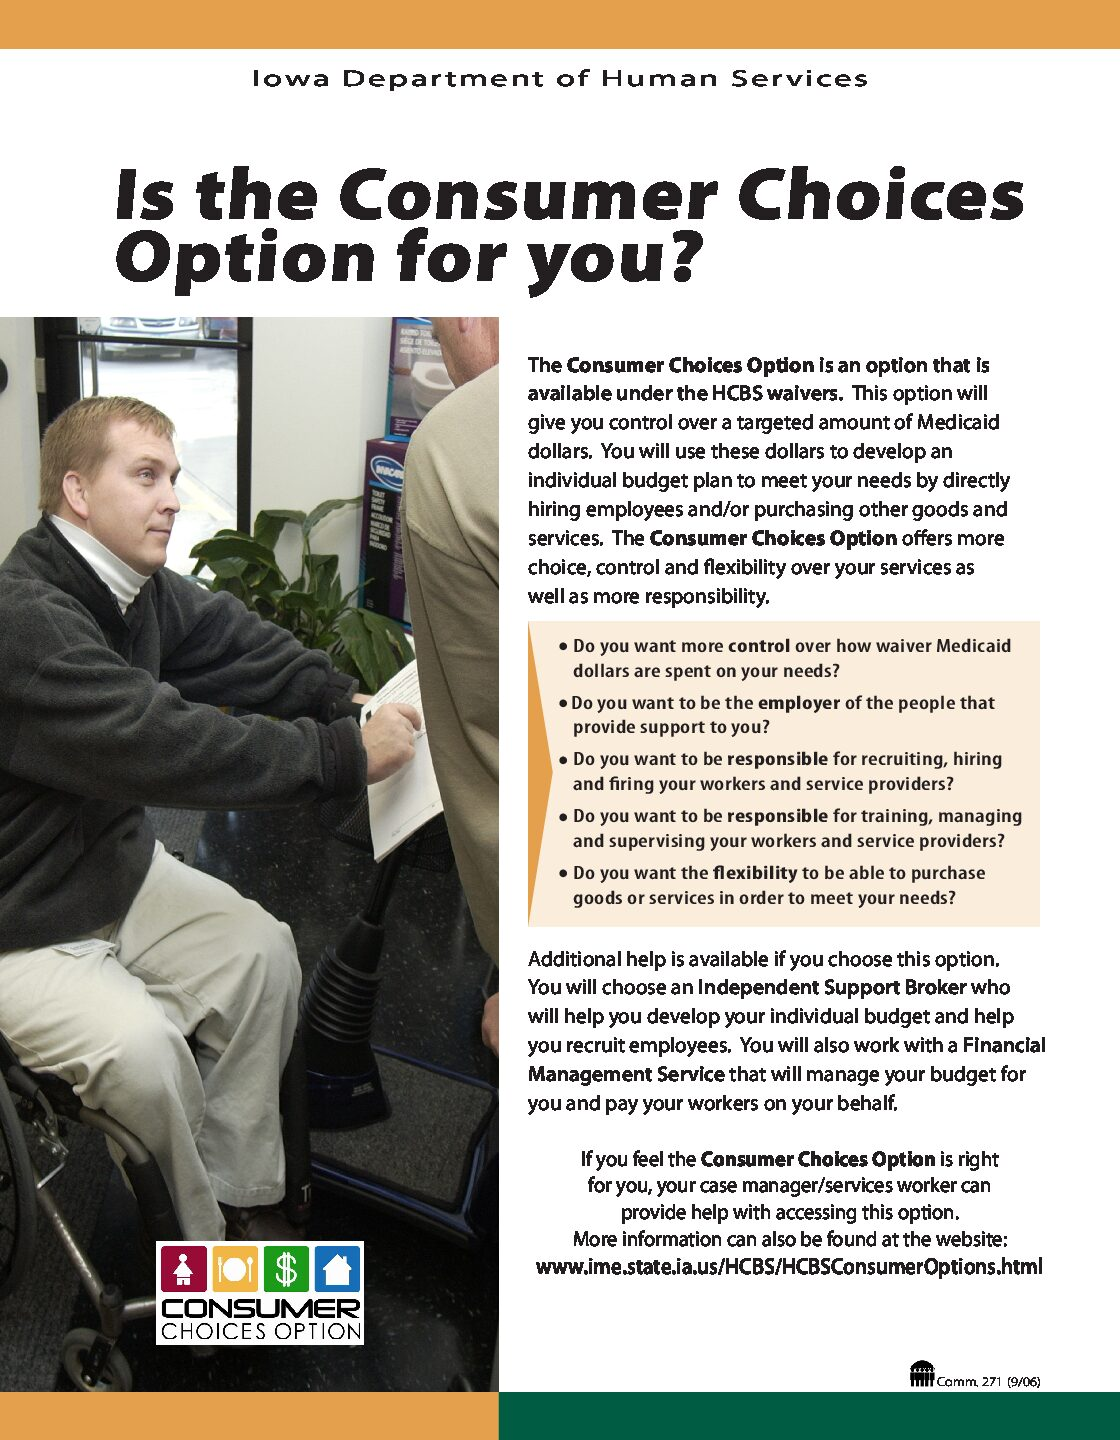 Is the Consumer Choices Option for you?